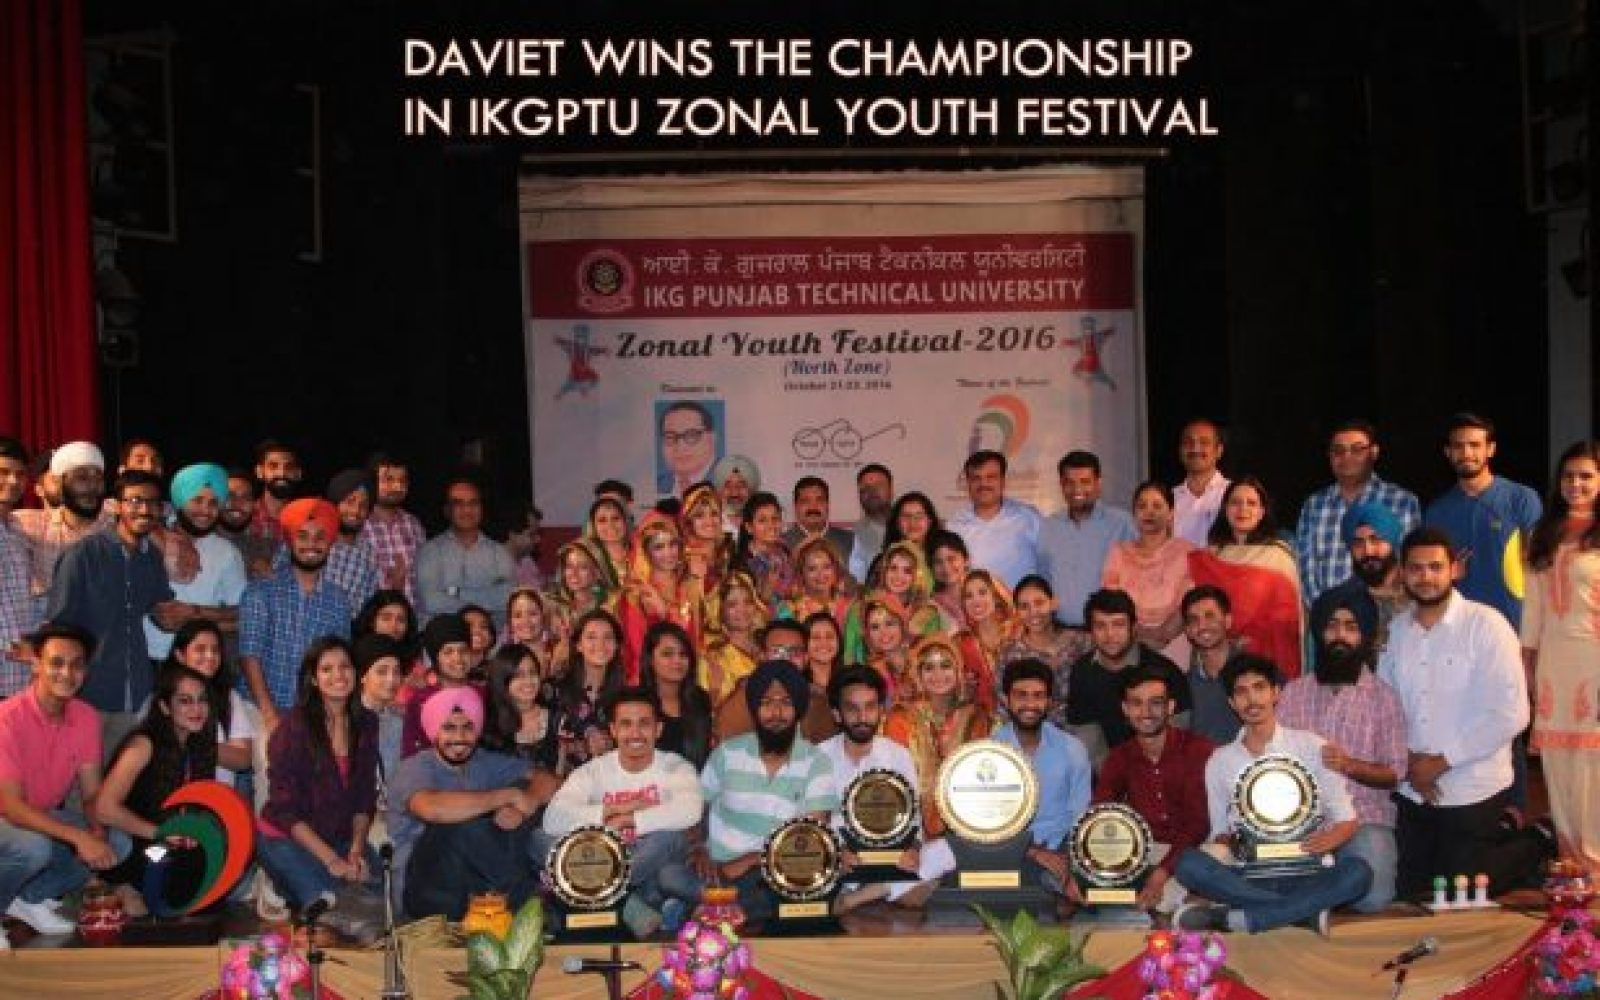 youthfestwin-696×385